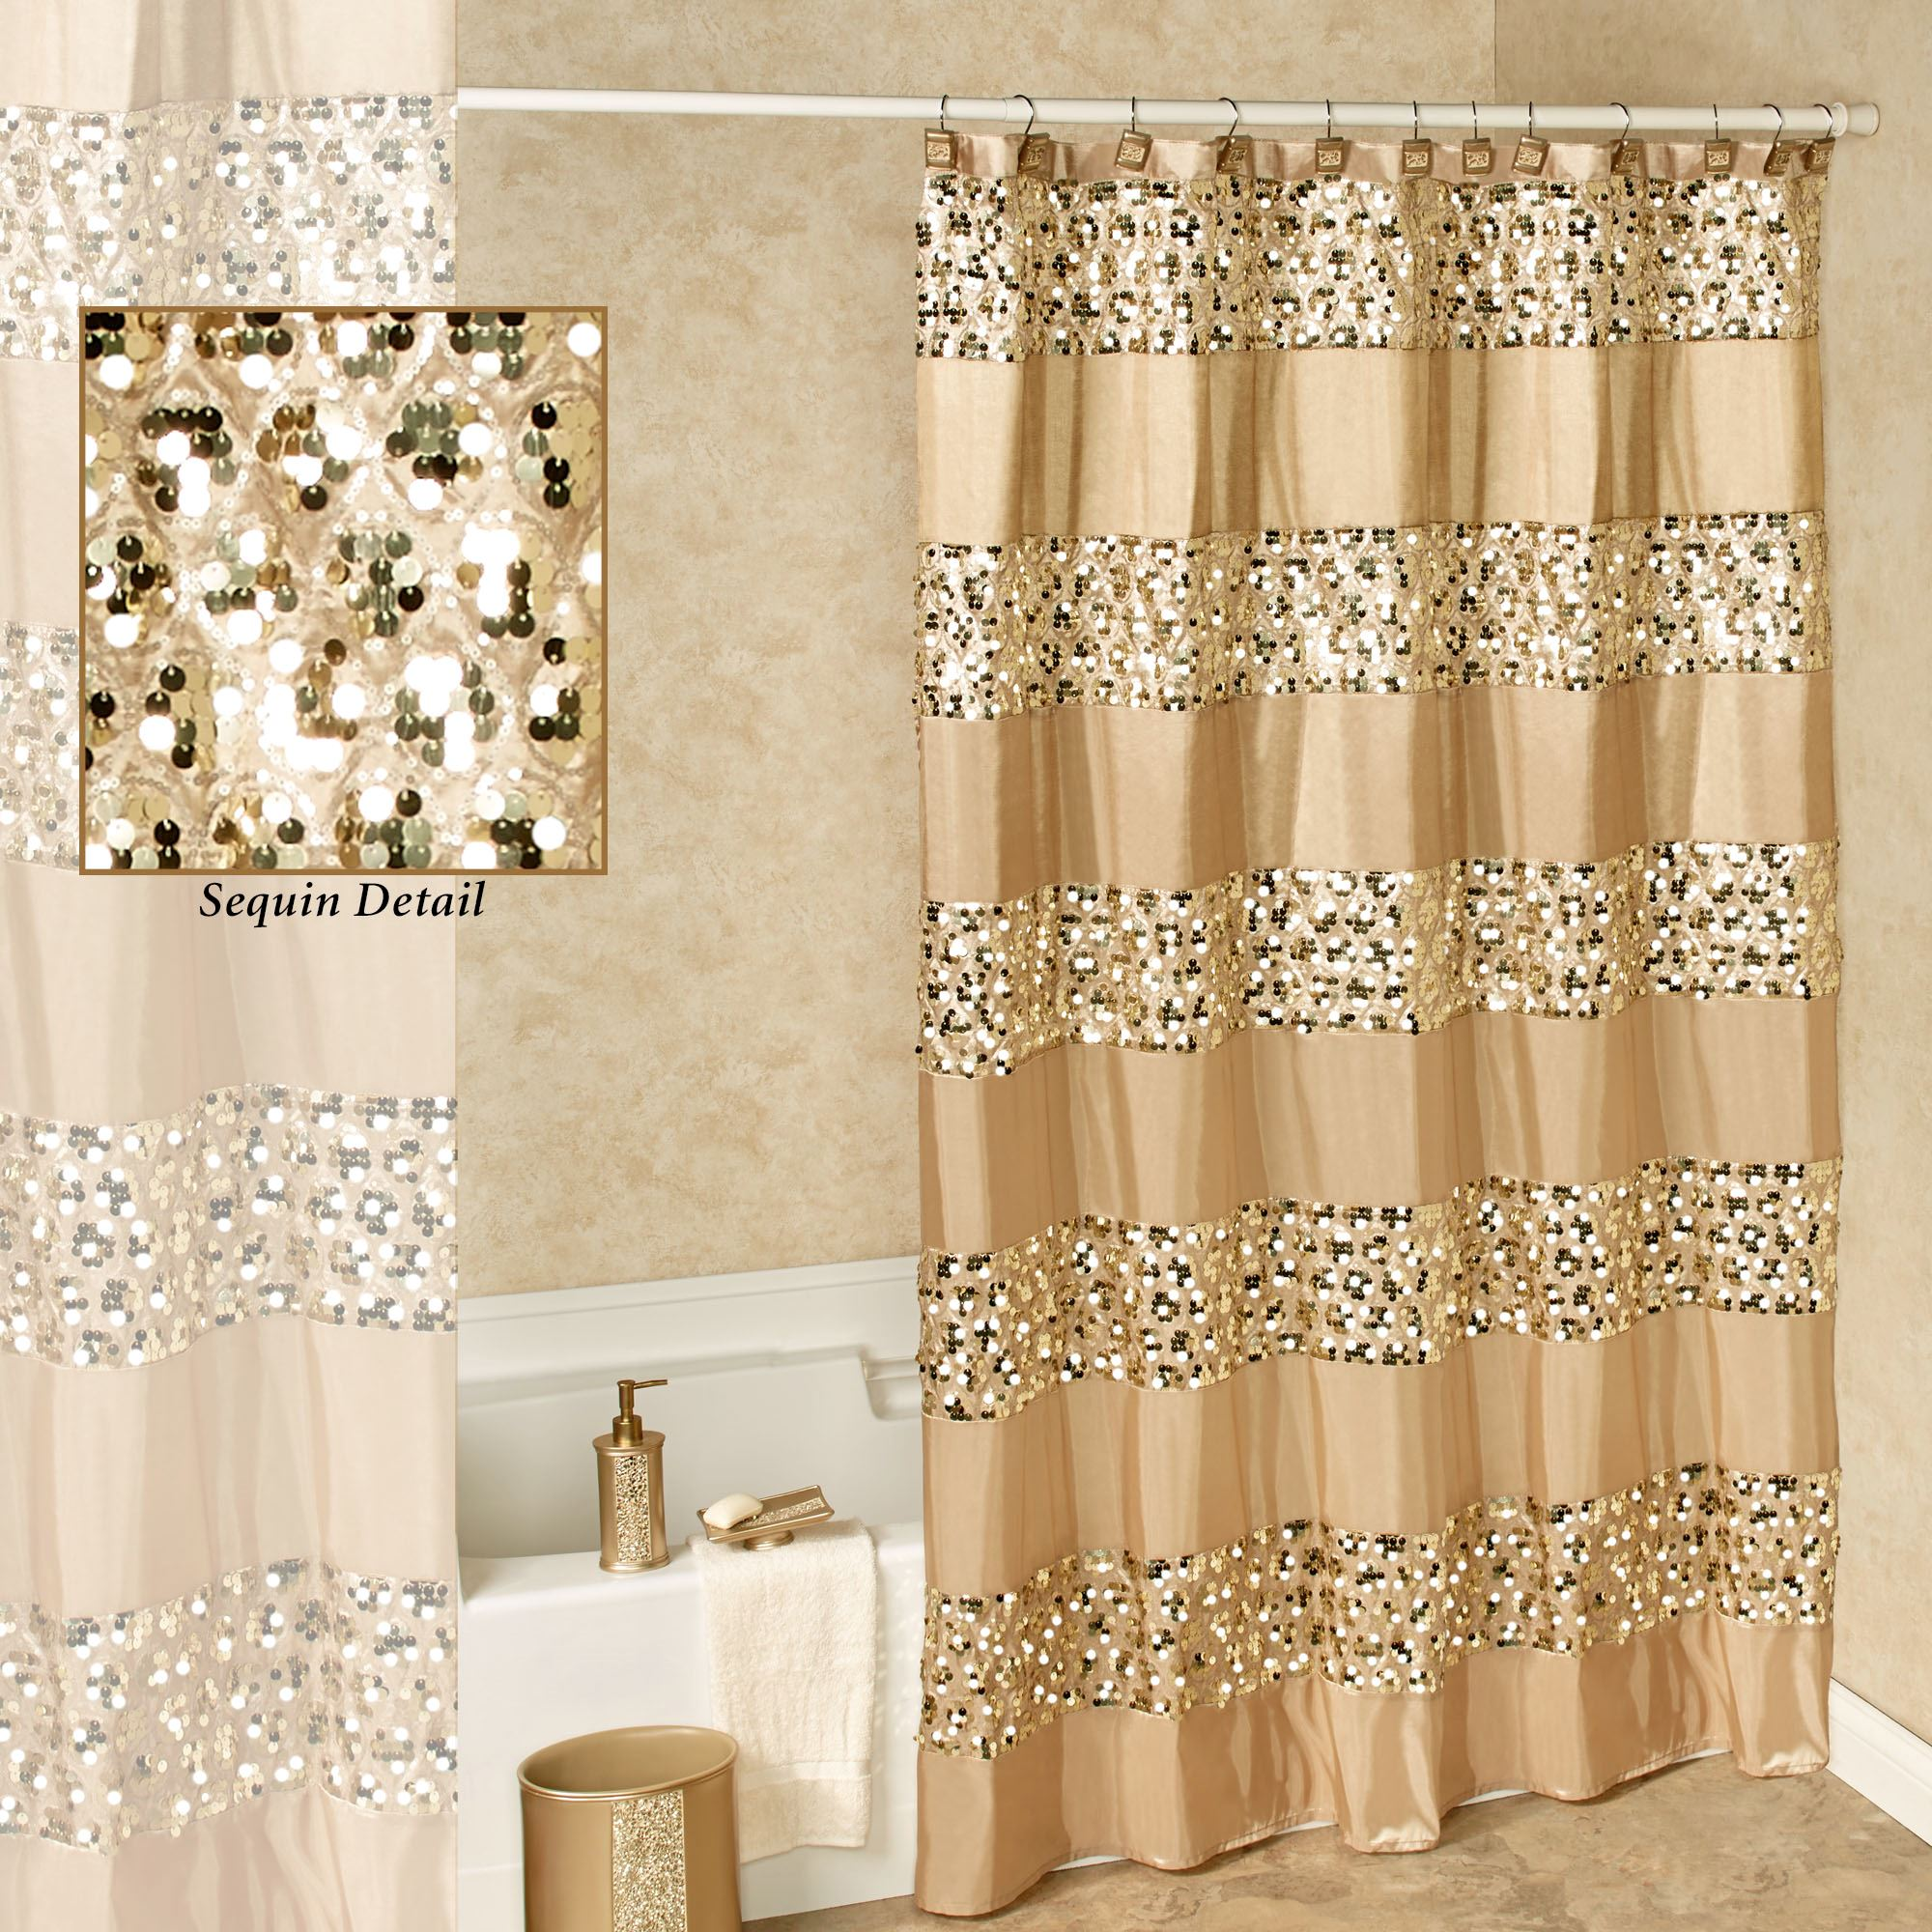 Bedroom Accent Furniture Prestigue Champagne Gold Sequined Shower Curtain